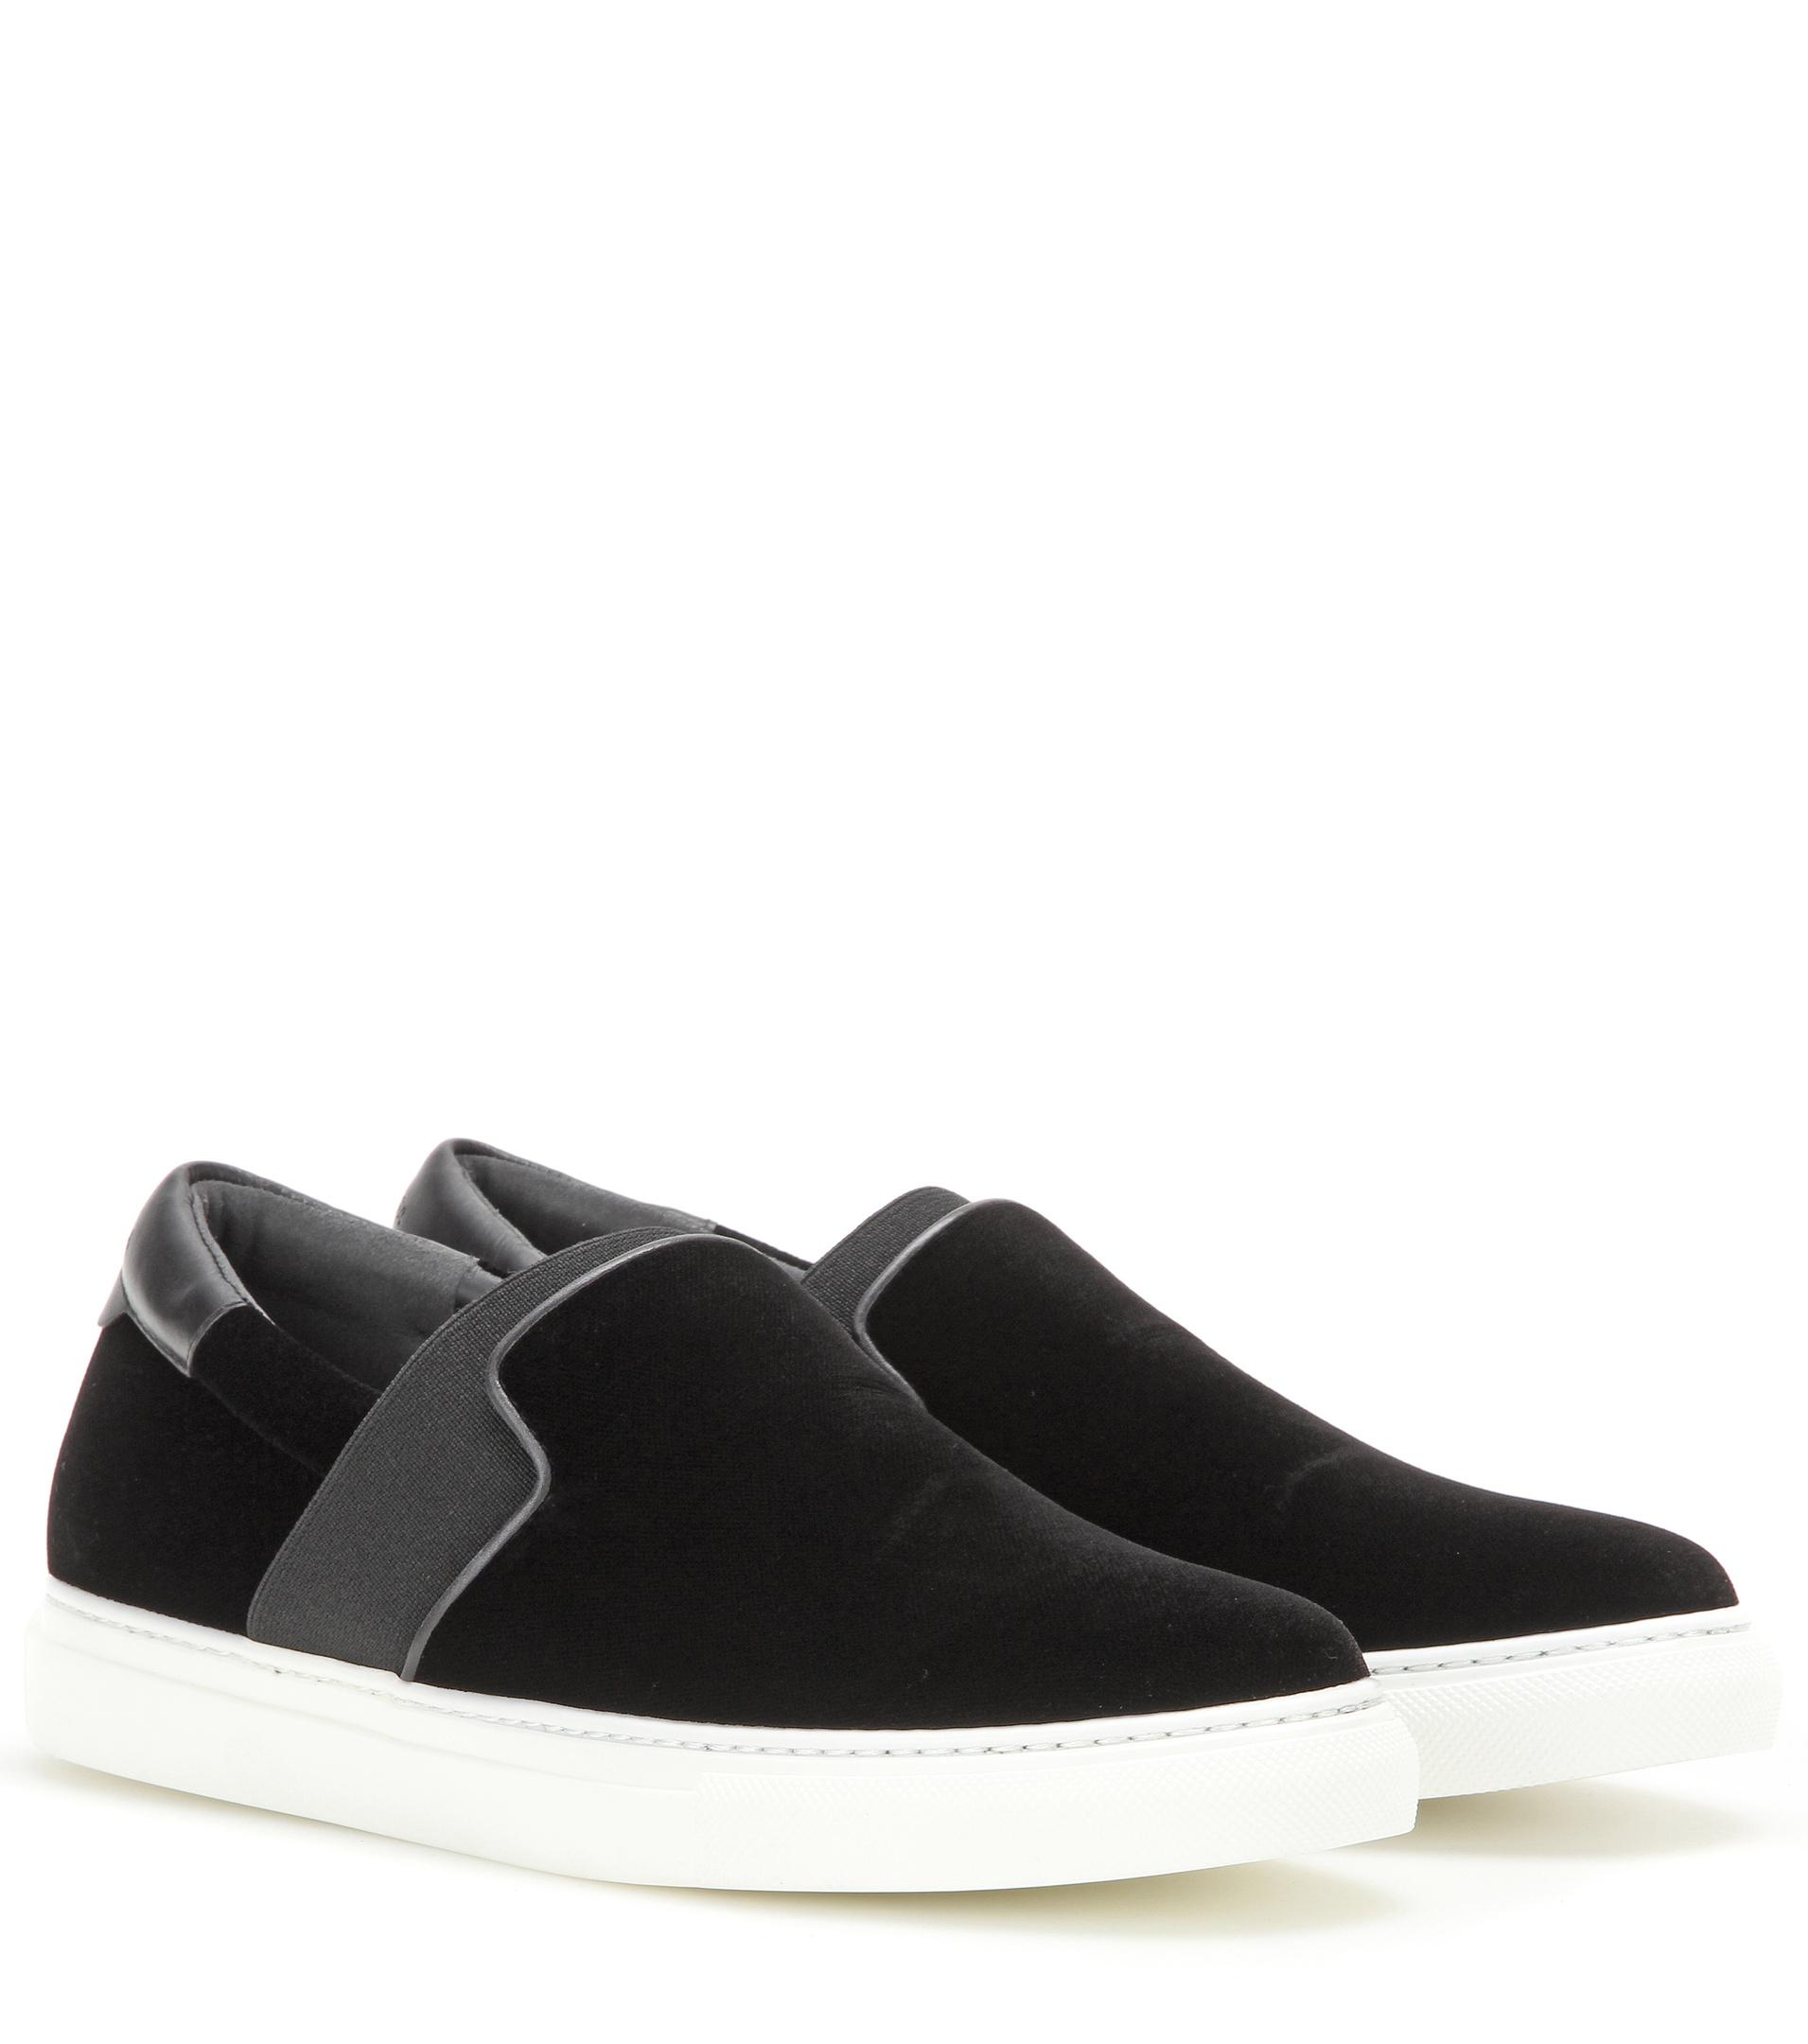 buy cheap low shipping clearance new arrival Balenciaga Velvet Slip-On Sneakers discount perfect outlet pay with visa buy cheap footlocker finishline SvEJJ2